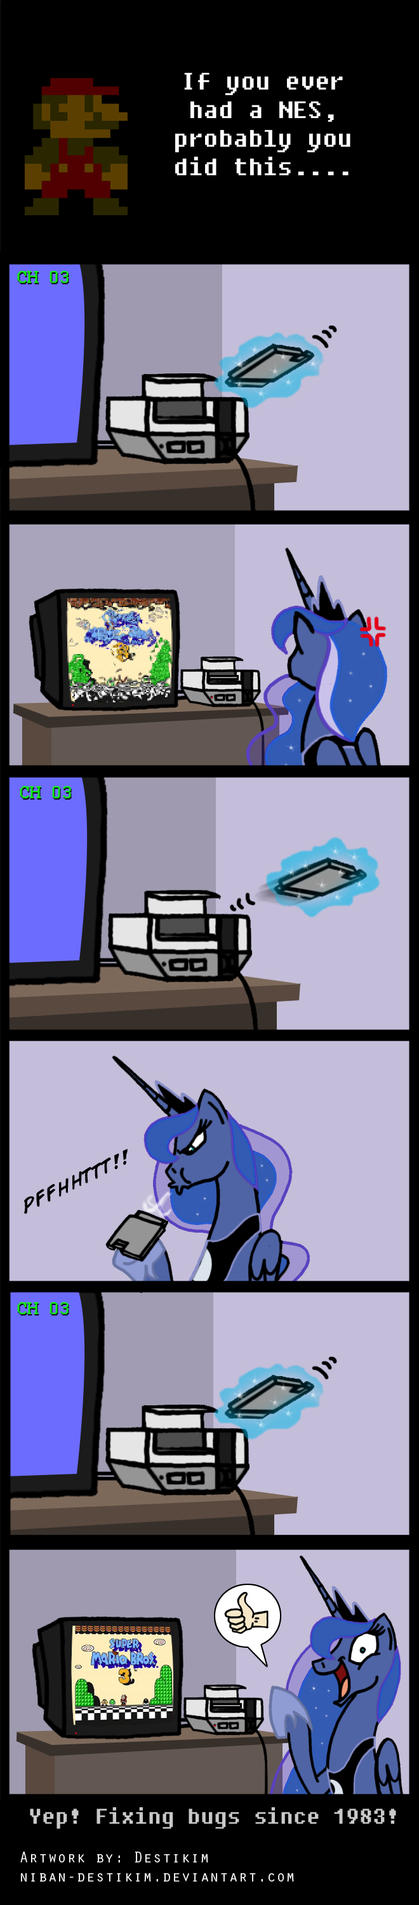 8-bit Gamer Luna - Blow it by Niban-Destikim